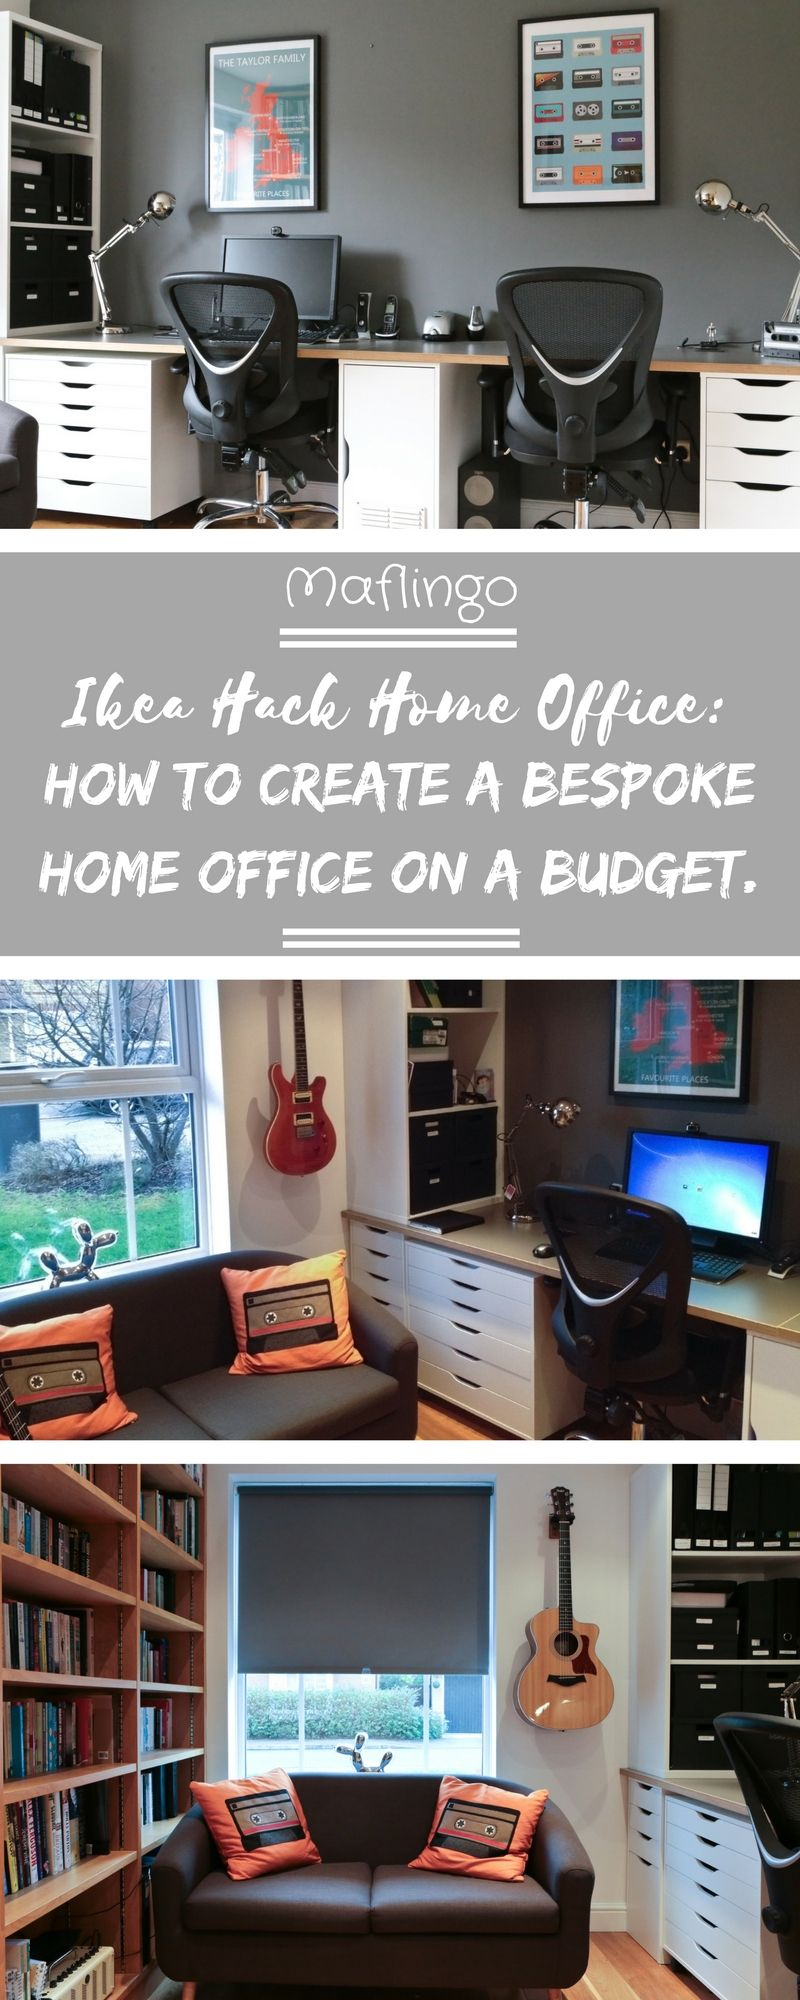 ikea hack home office study how to create a home office on a budget home pinterest. Black Bedroom Furniture Sets. Home Design Ideas